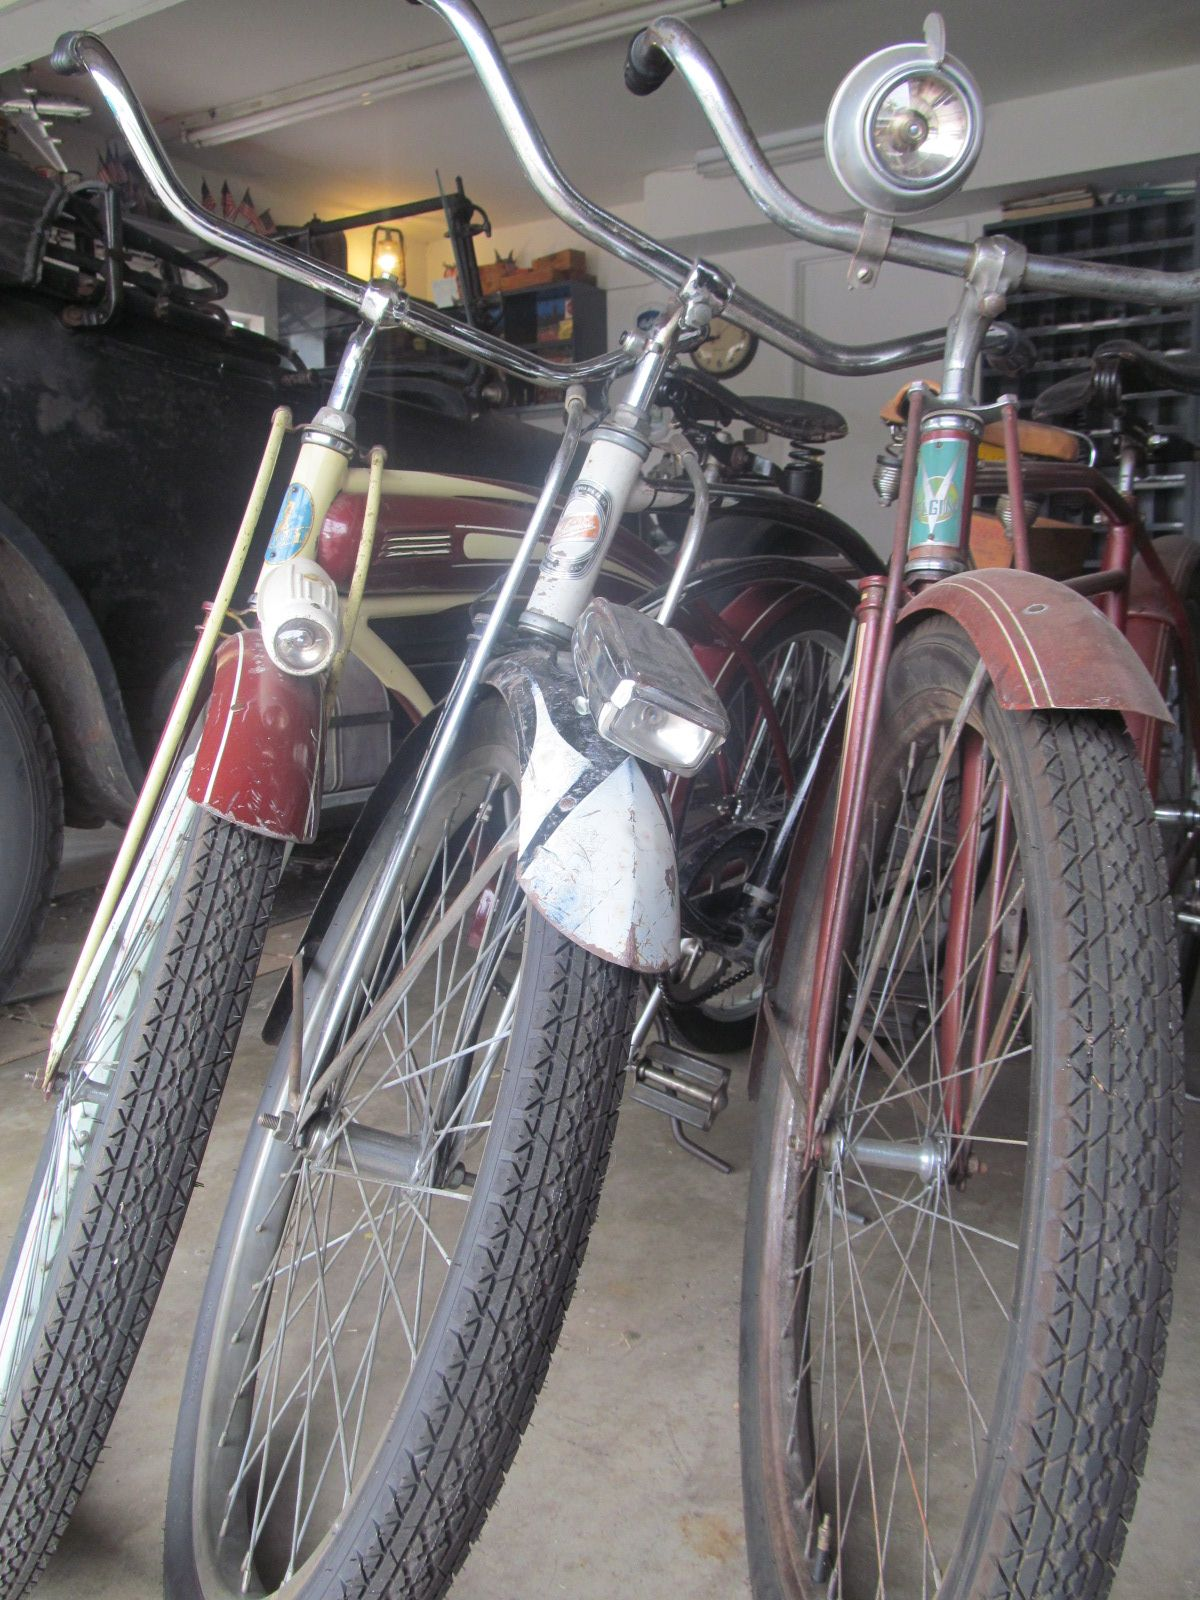 01a9bf4880d Vintage bikes: 1941 Huffman, 1961 Columbia Newsboy, 1937 Elgin. 1925 Dodge  Brothers (in background)